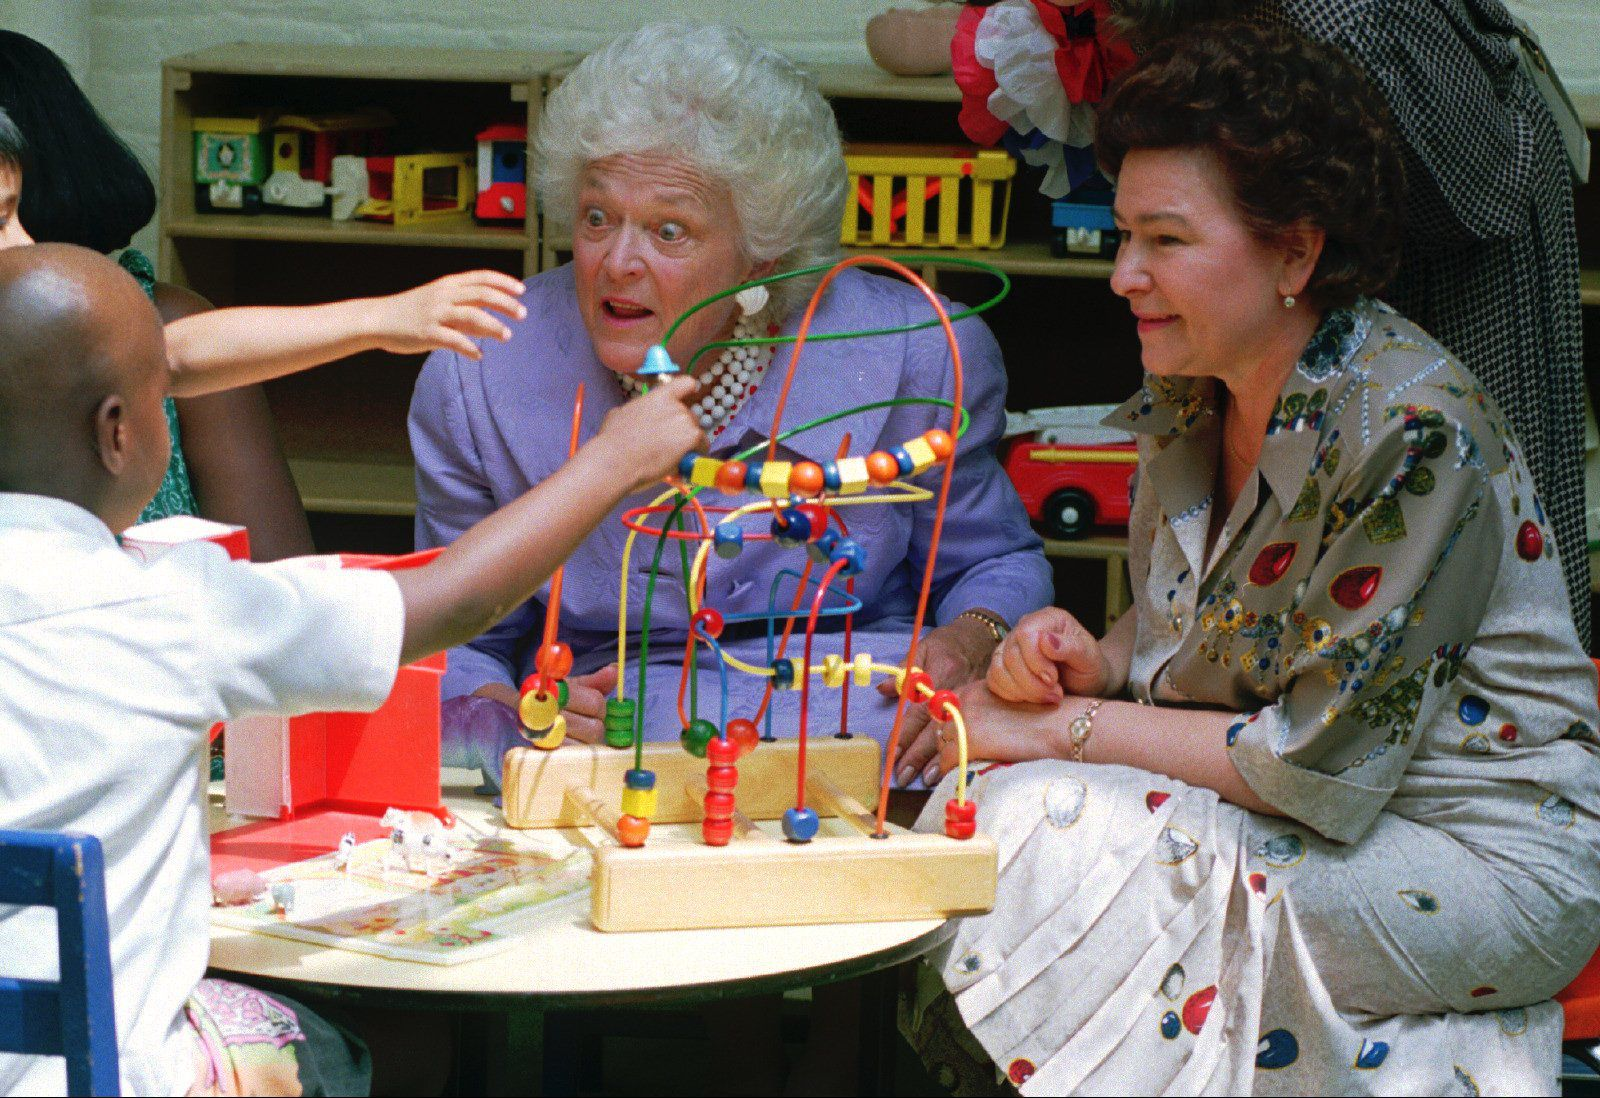 First lady Barbara Bush and Russian first lady Naina Yeltsin played with children during a visit to the children's program at Martha's Table in June 1992. Martha's Table is a non-profit organization that serves homeless and hungry people in Washington,D.C.